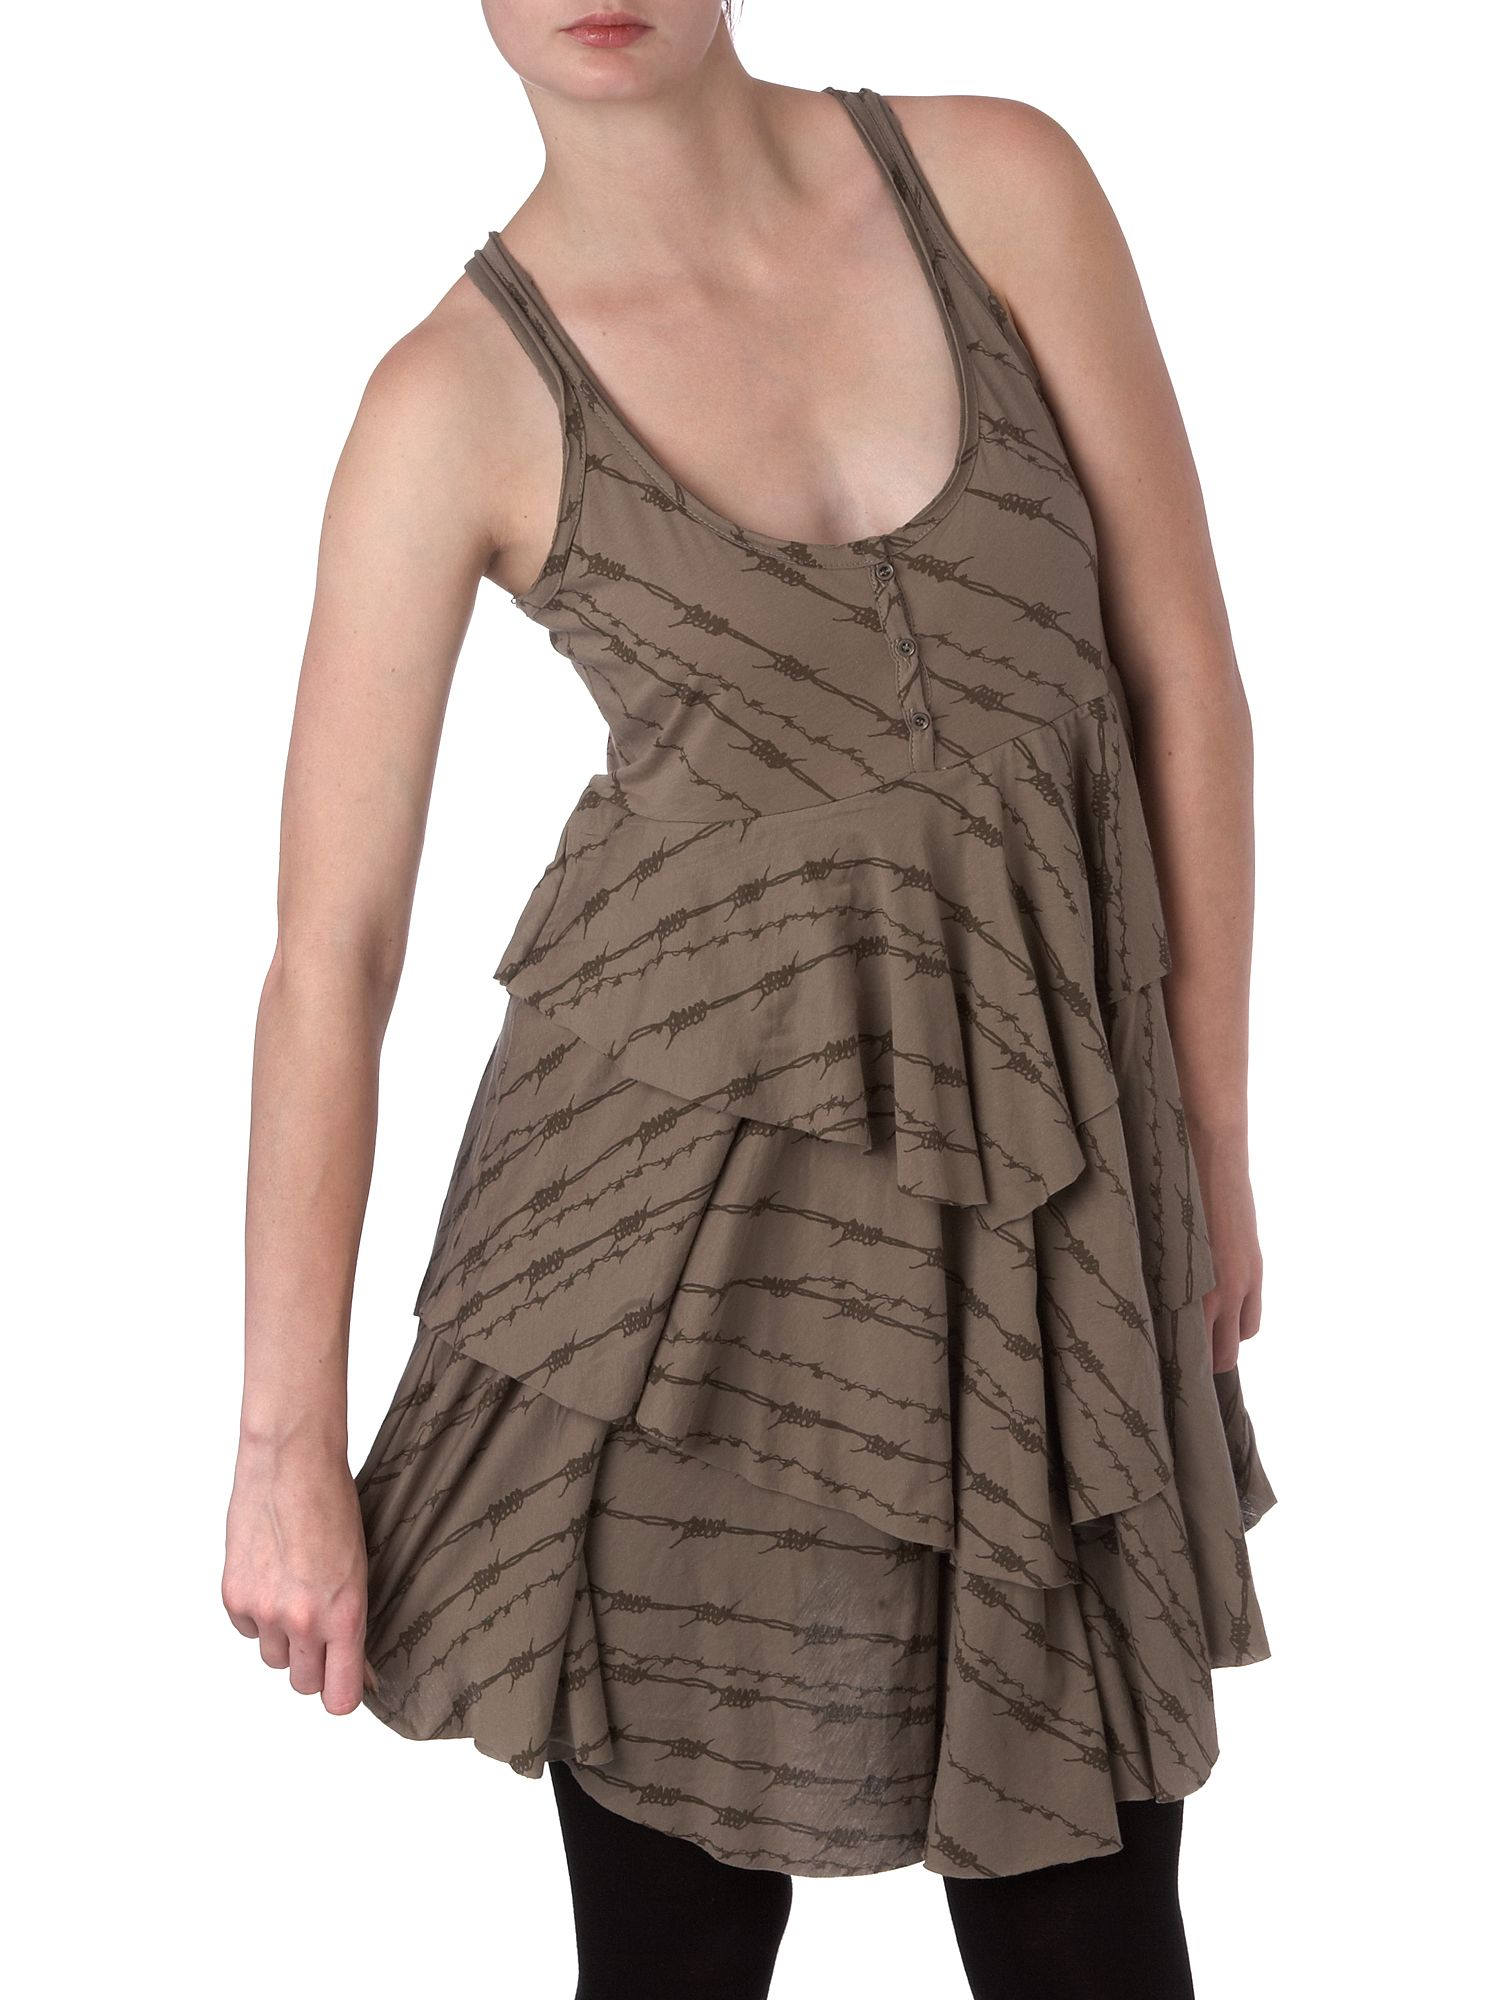 Barbed wire chevron layer dress Khaki